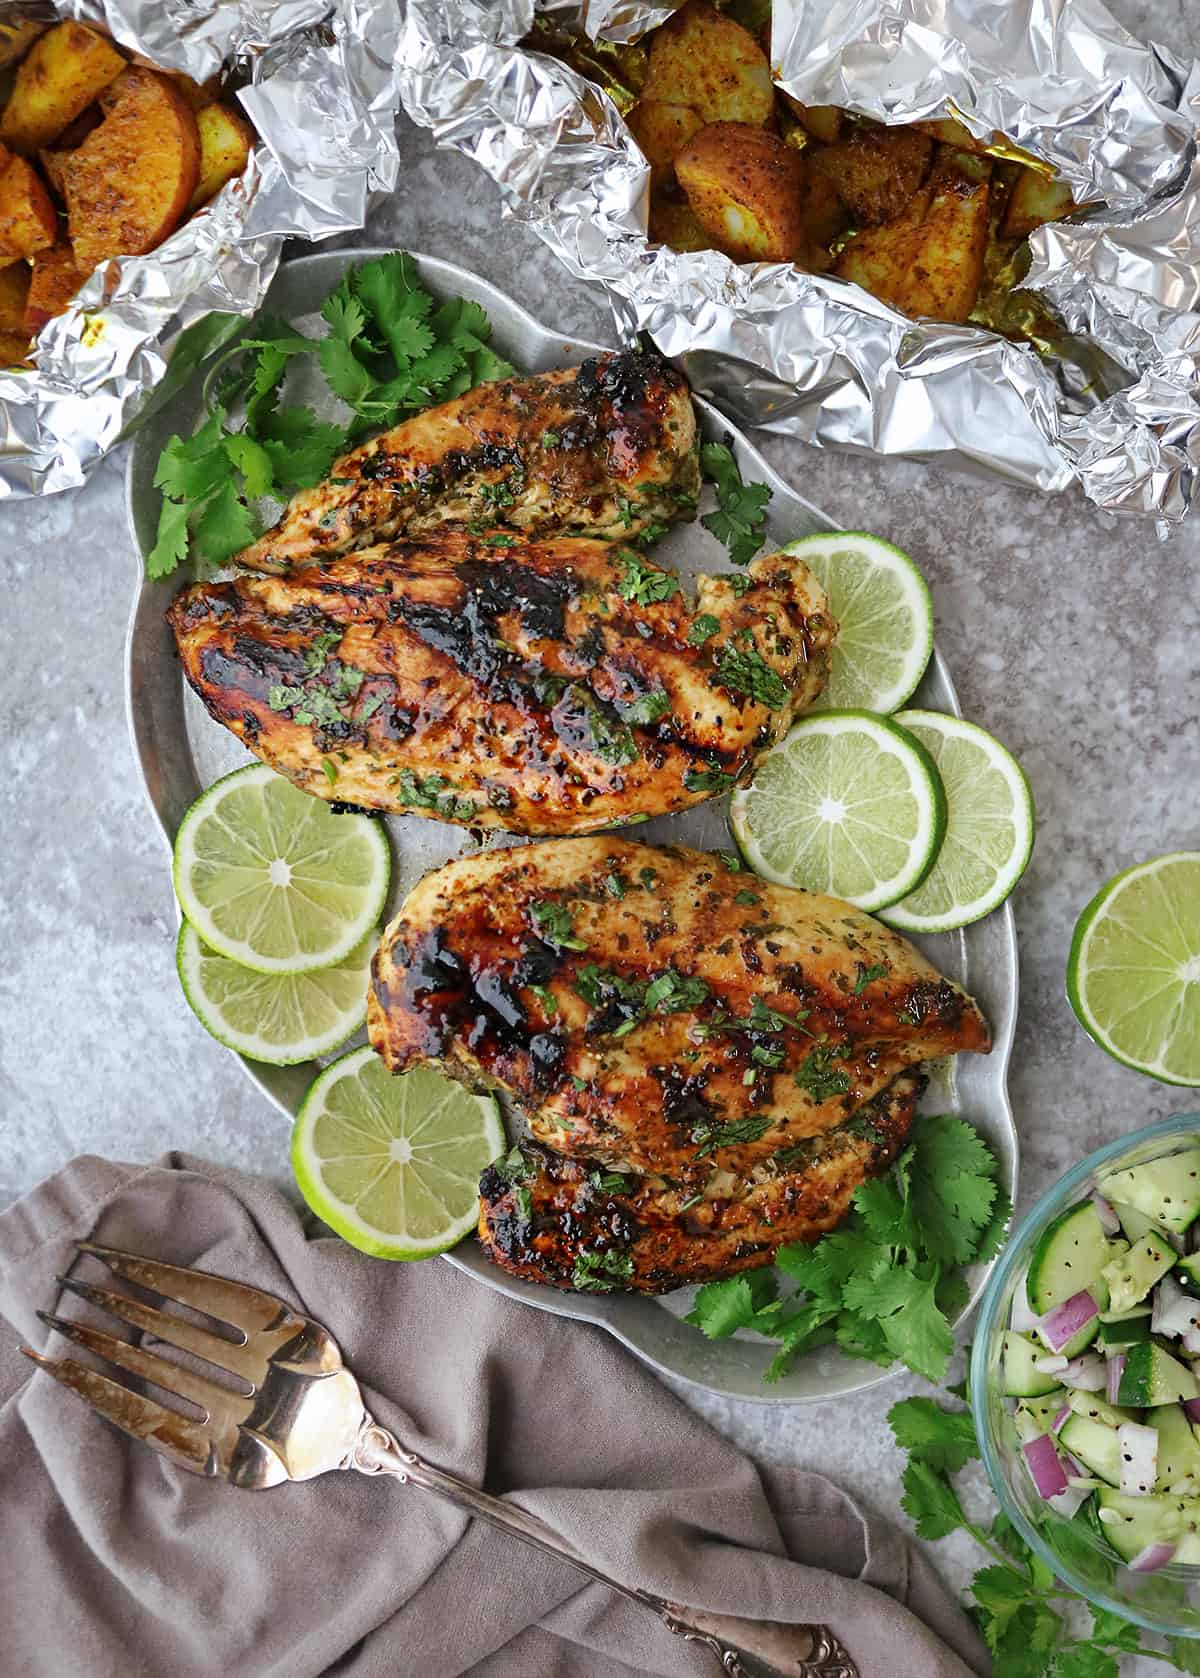 Table with Mouthwatering grilled cilantro lime chicken with turmeric potatoes and easy cucumber salad